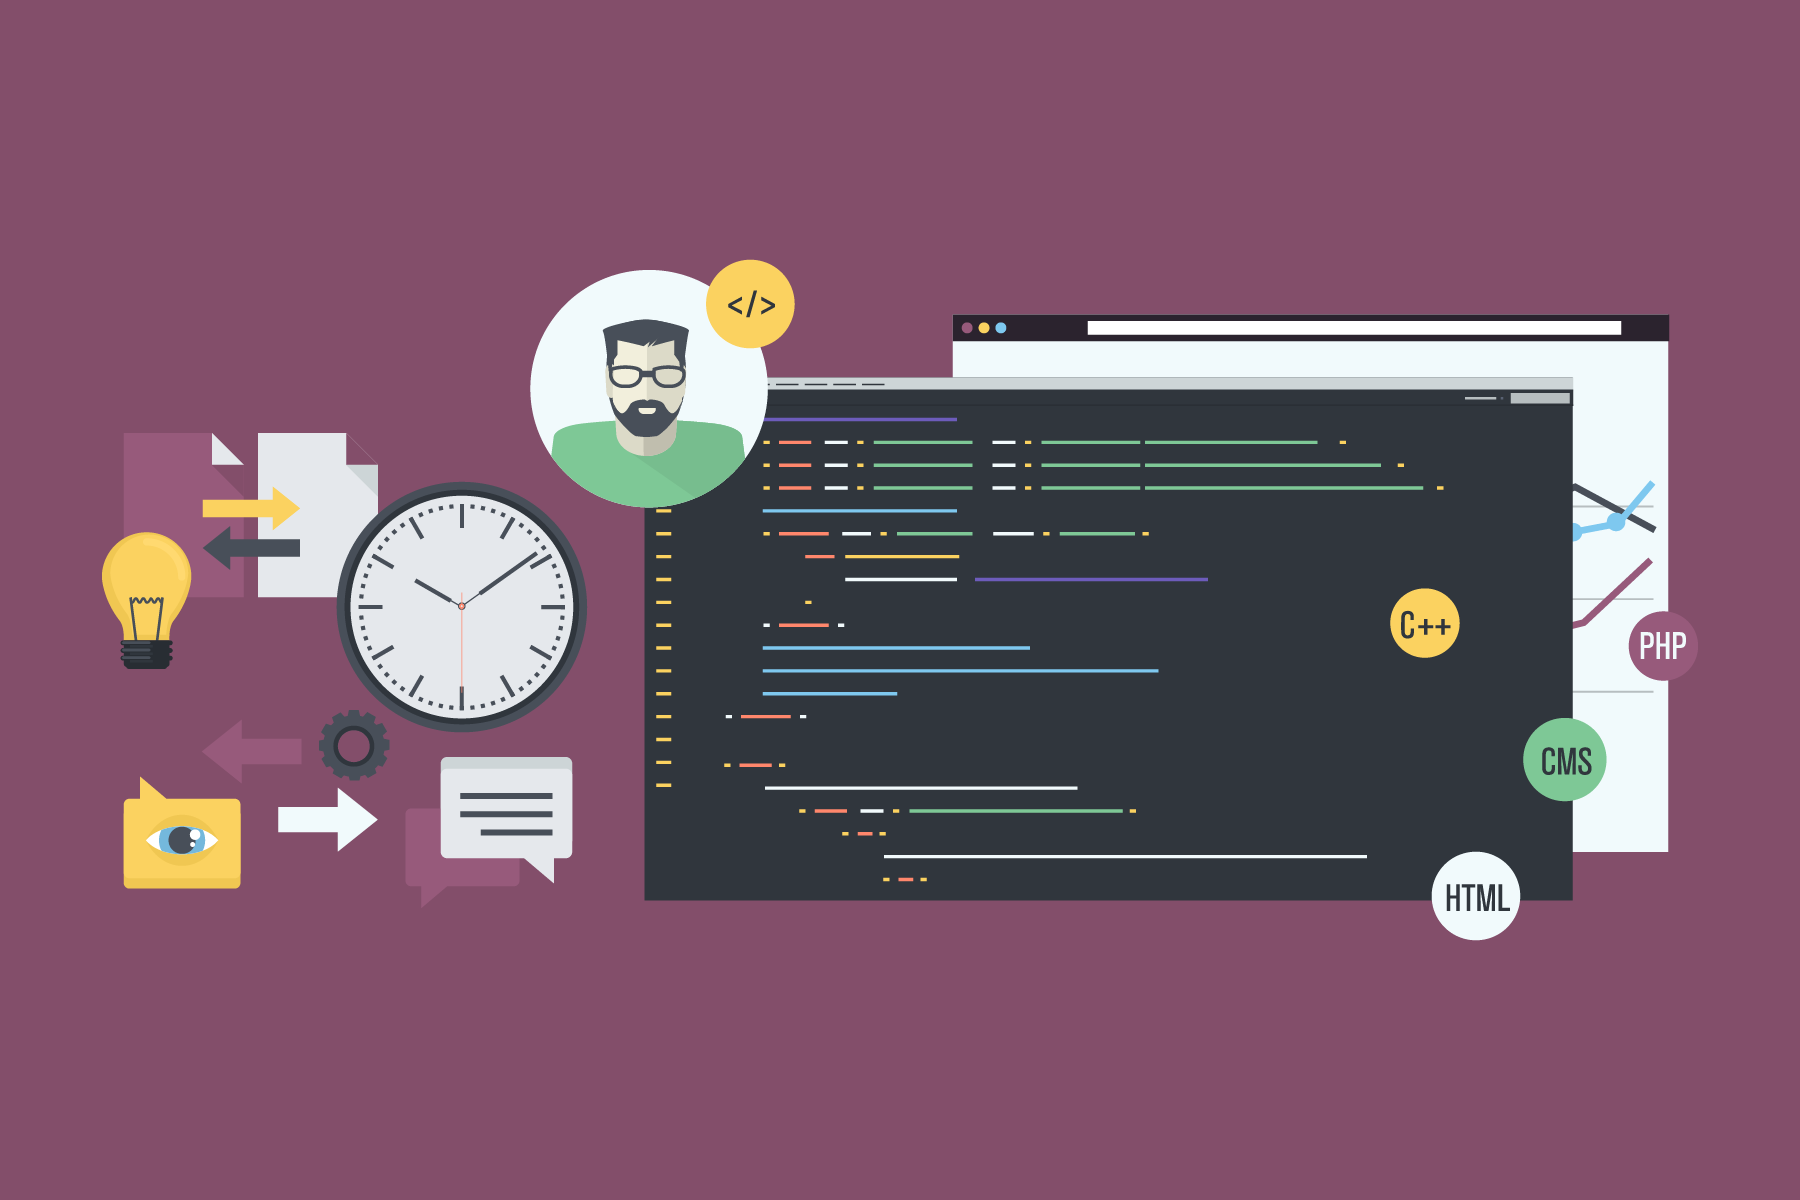 Why use WordPress vs coding your own CMS